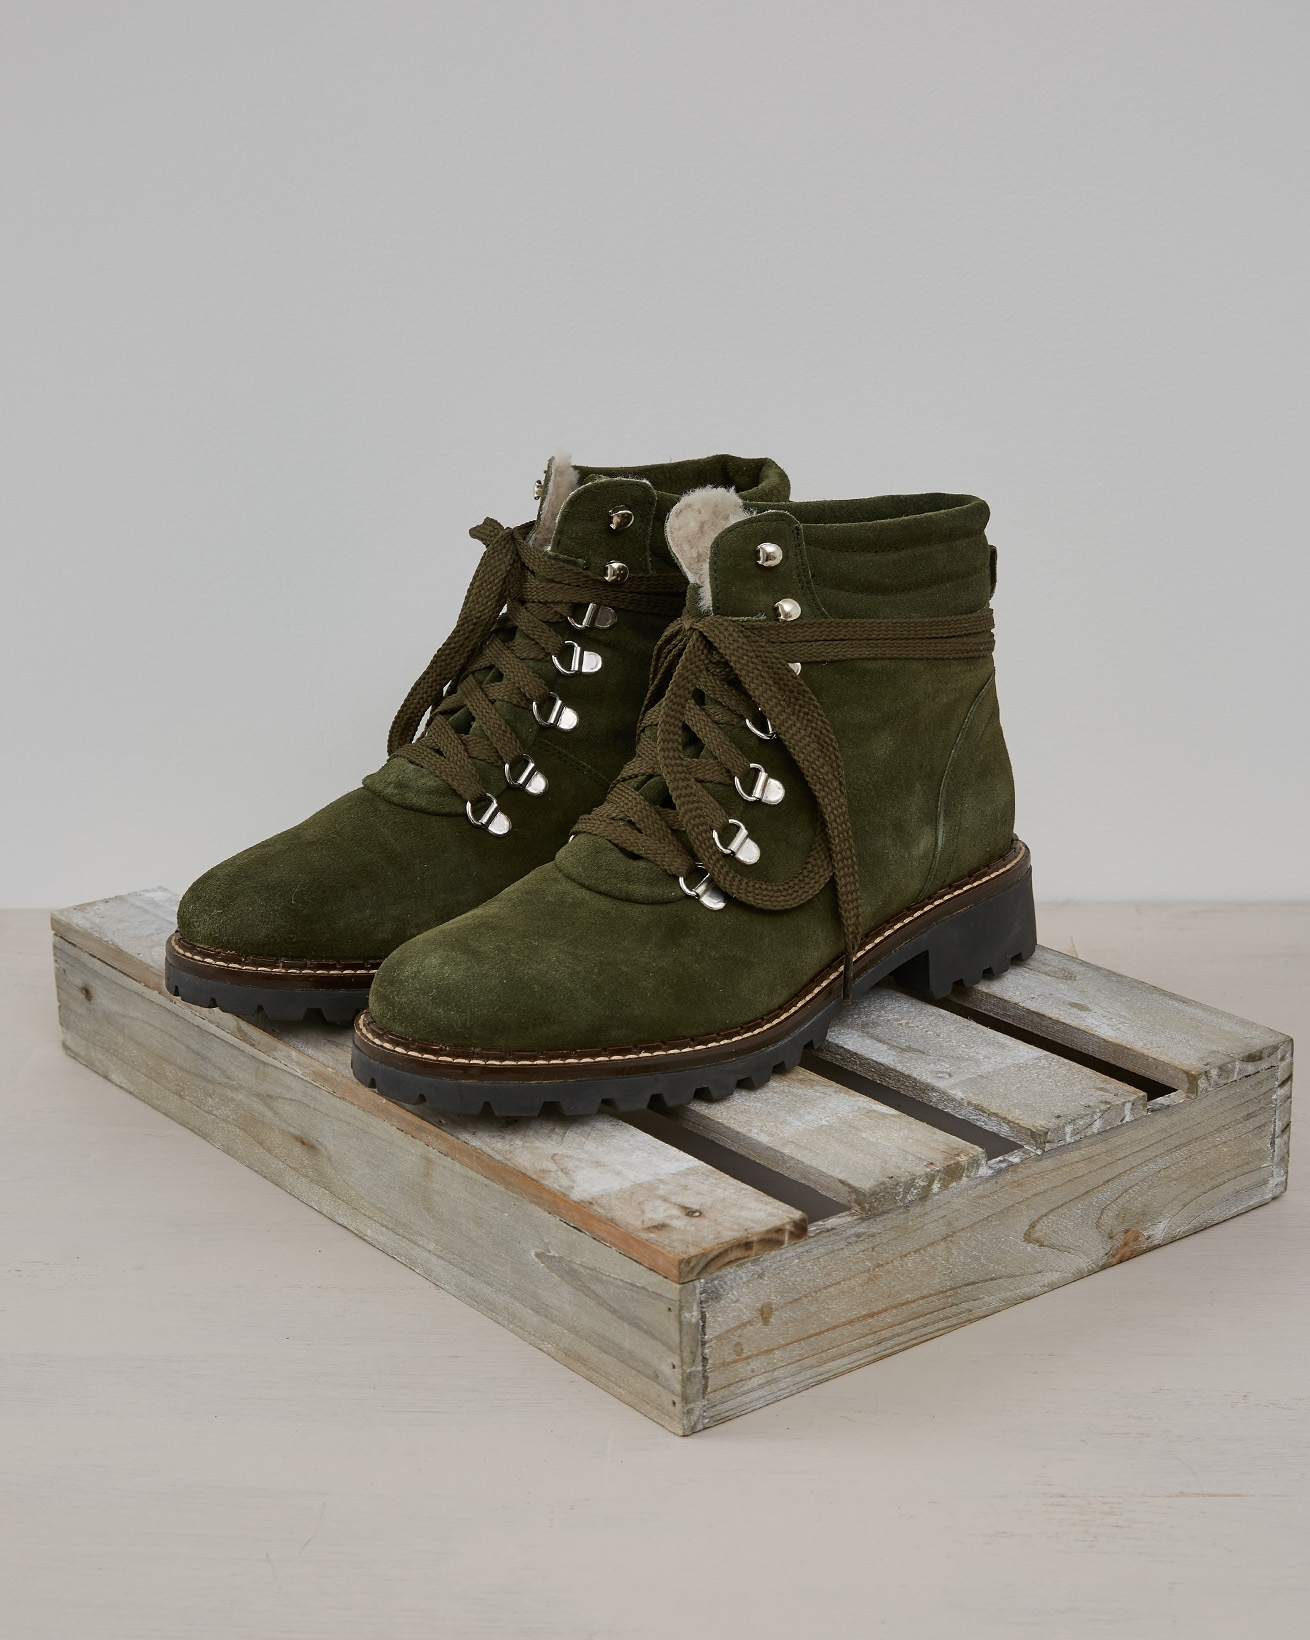 Hiker Boot - Olive Suede - Size 39 - 2572